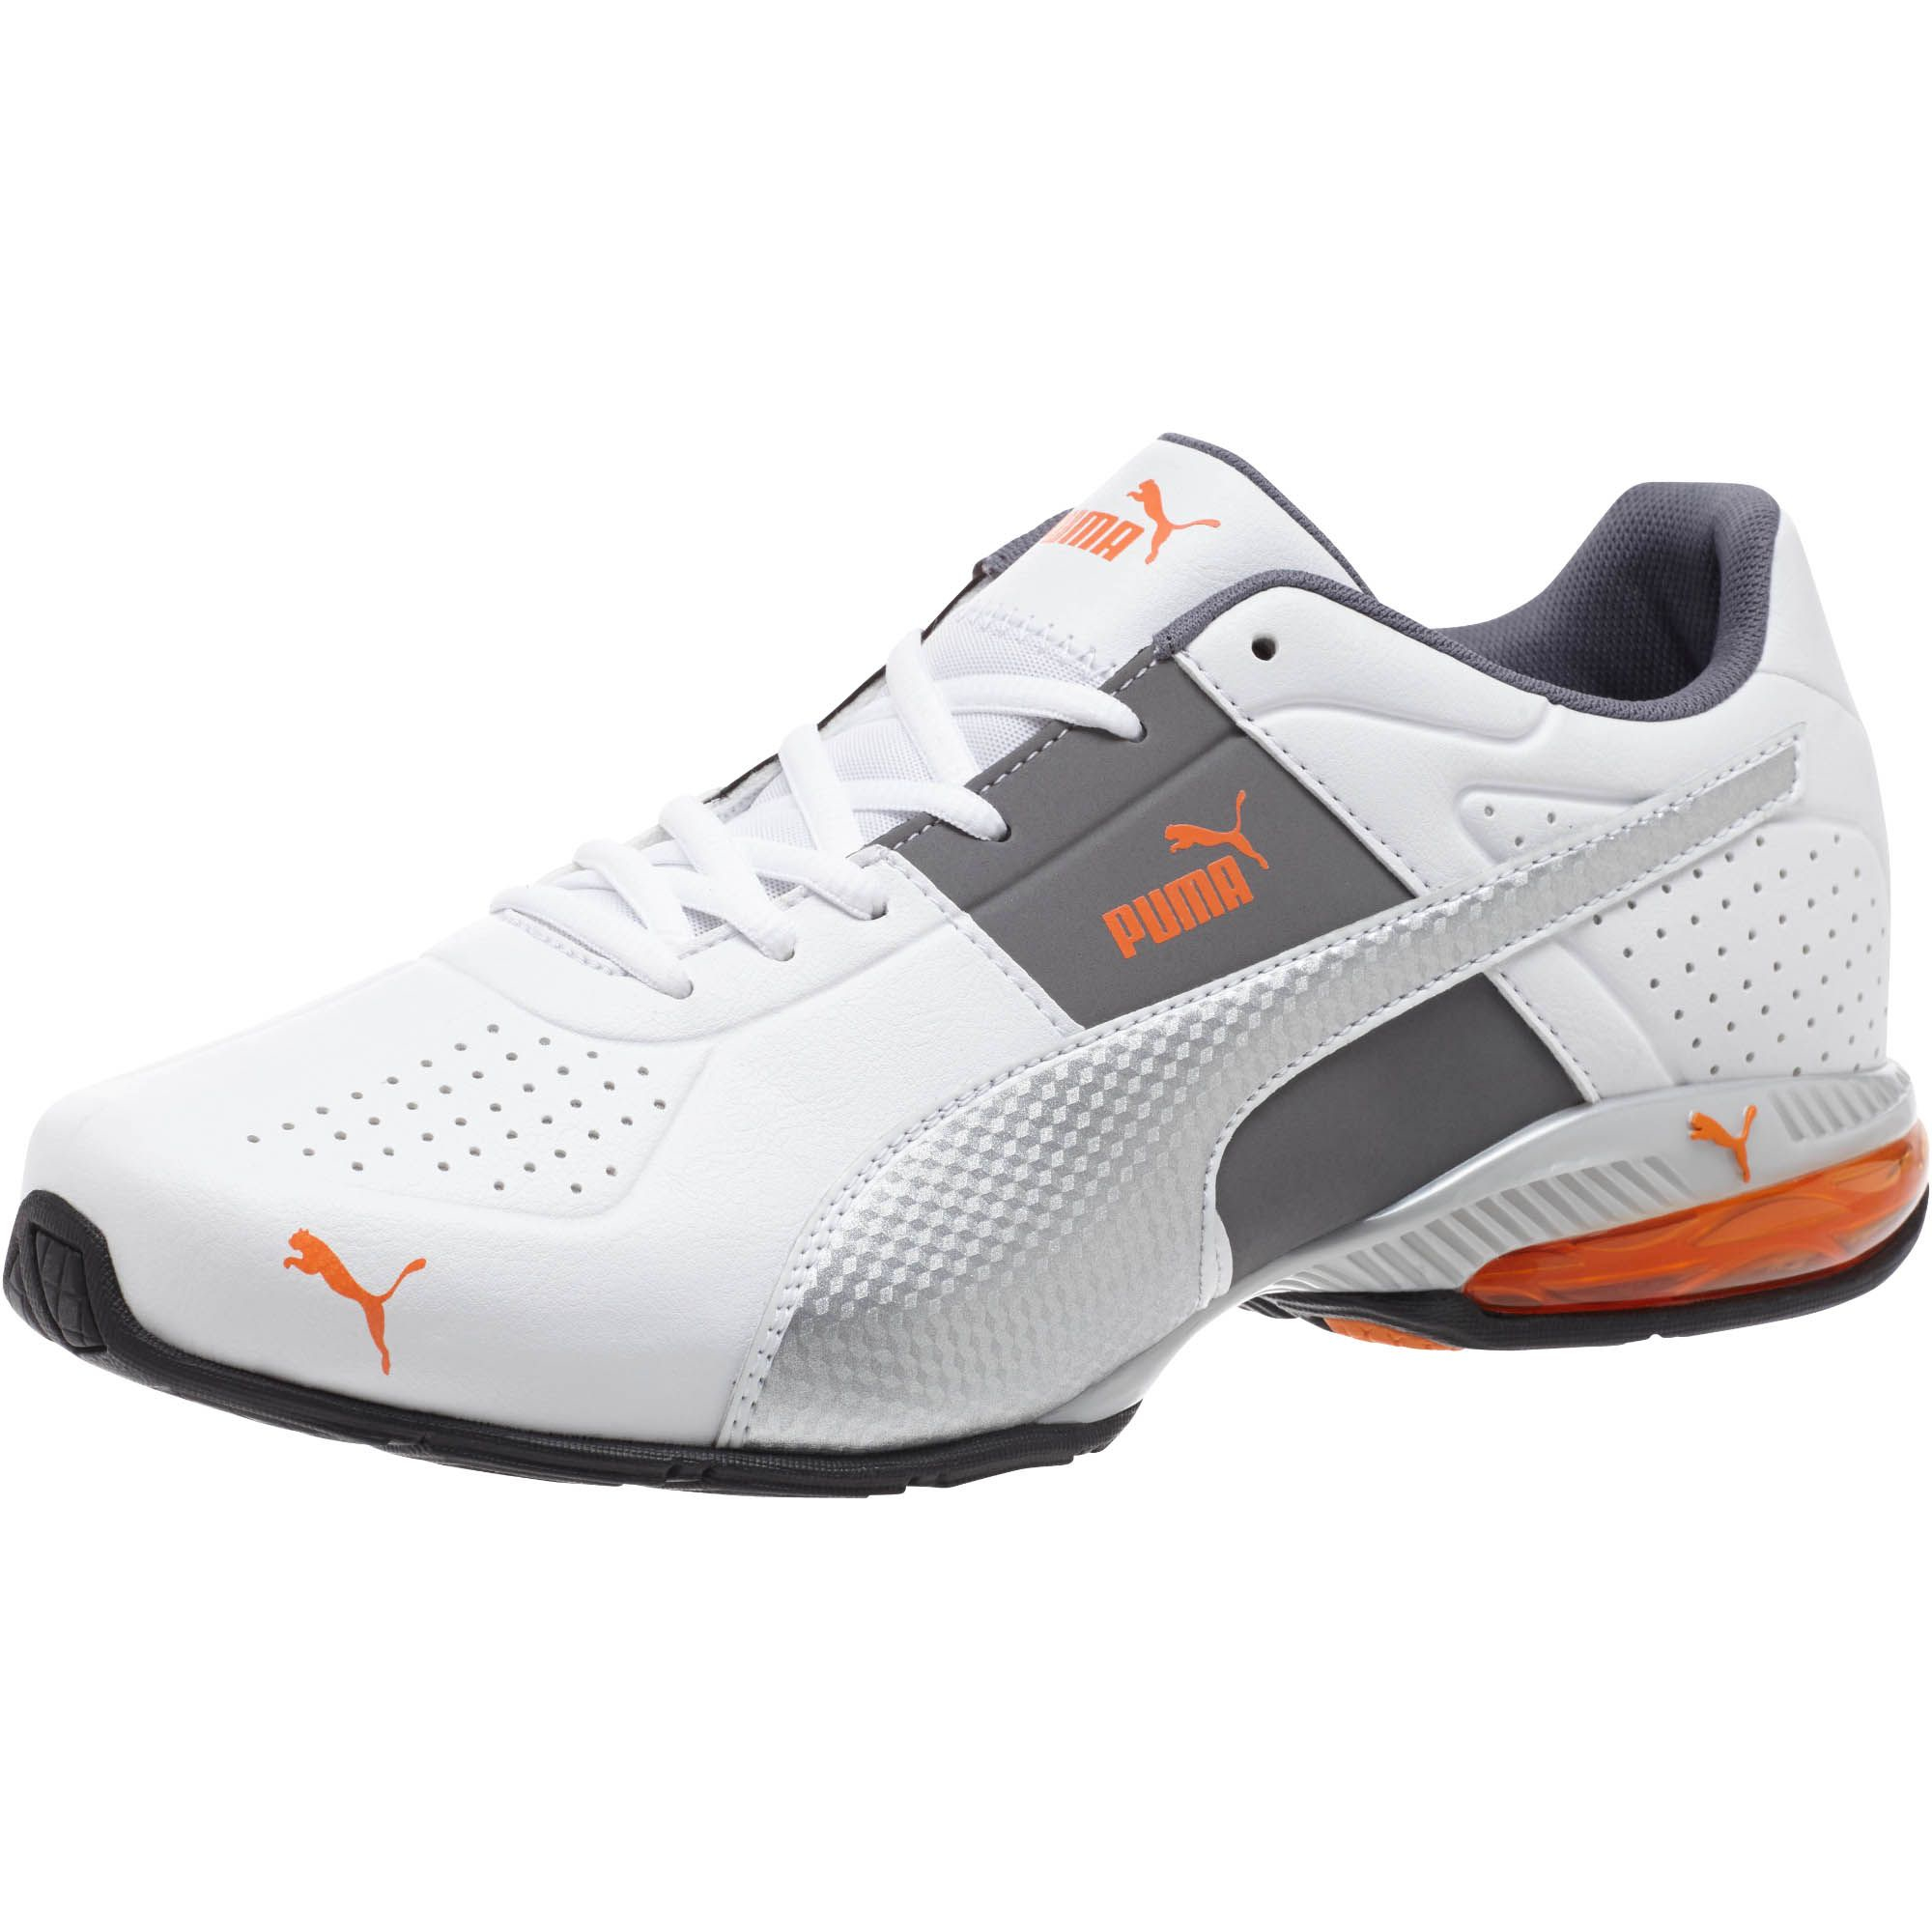 4899cea833895b Lyst - PUMA Cell Surin 2 Men s Training Shoes in Gray for Men